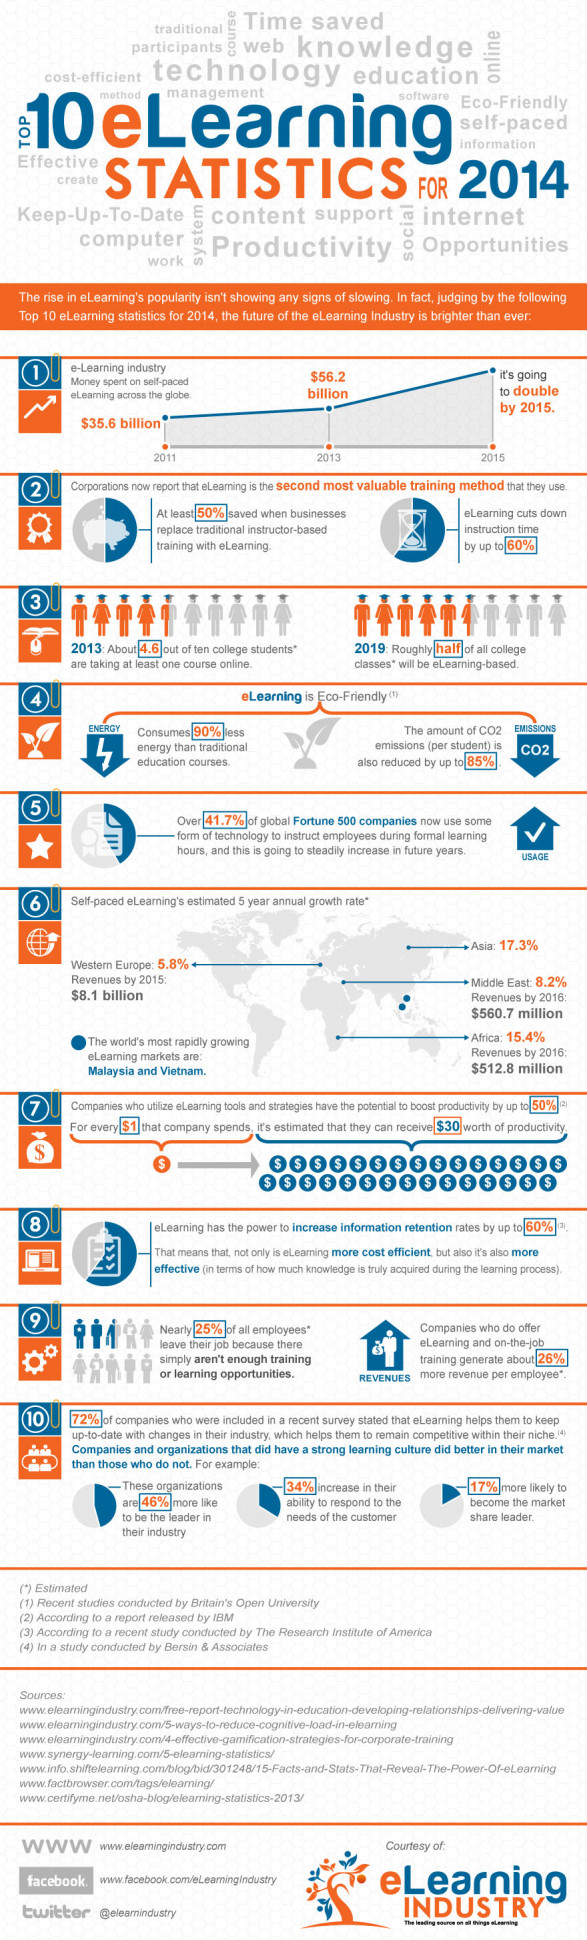 Top 10 e-Learning Statistics for 2014